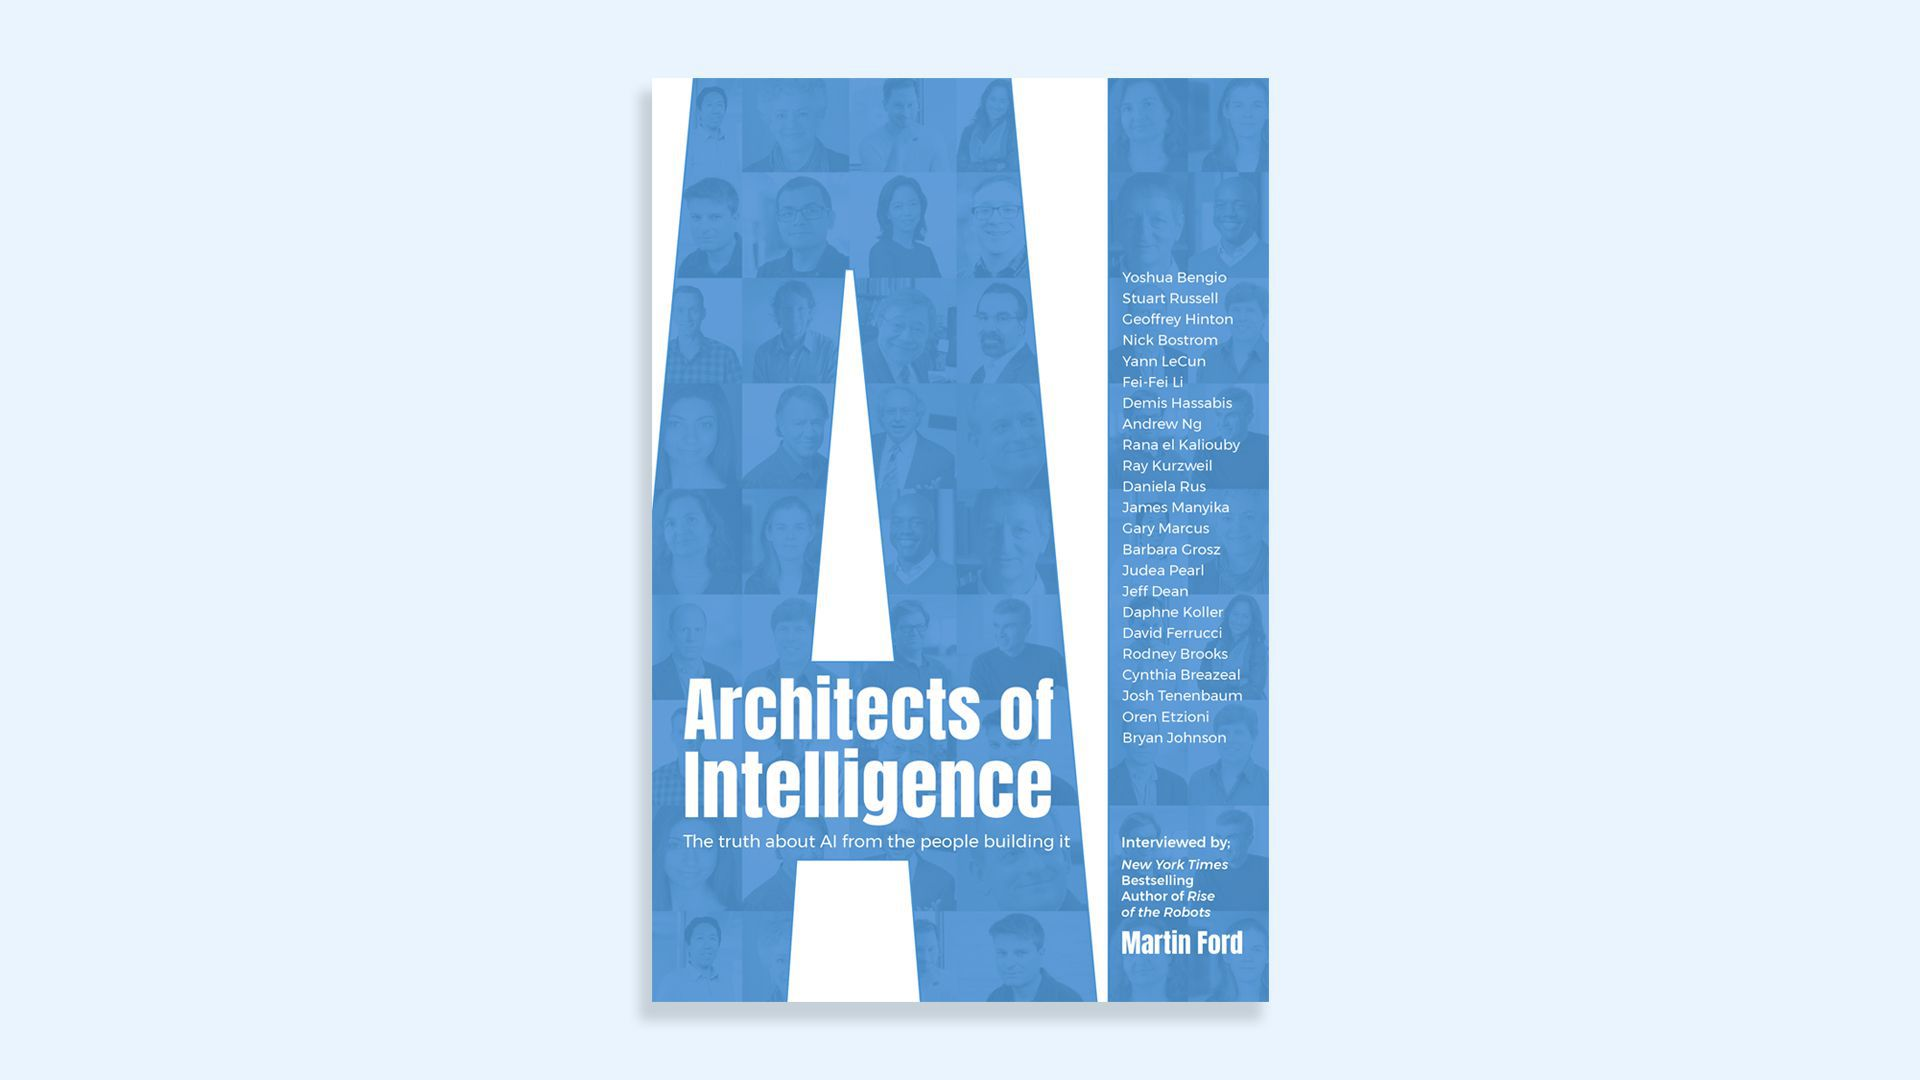 """The cover of Martin Ford's book, """"Architects of Intelligence"""""""